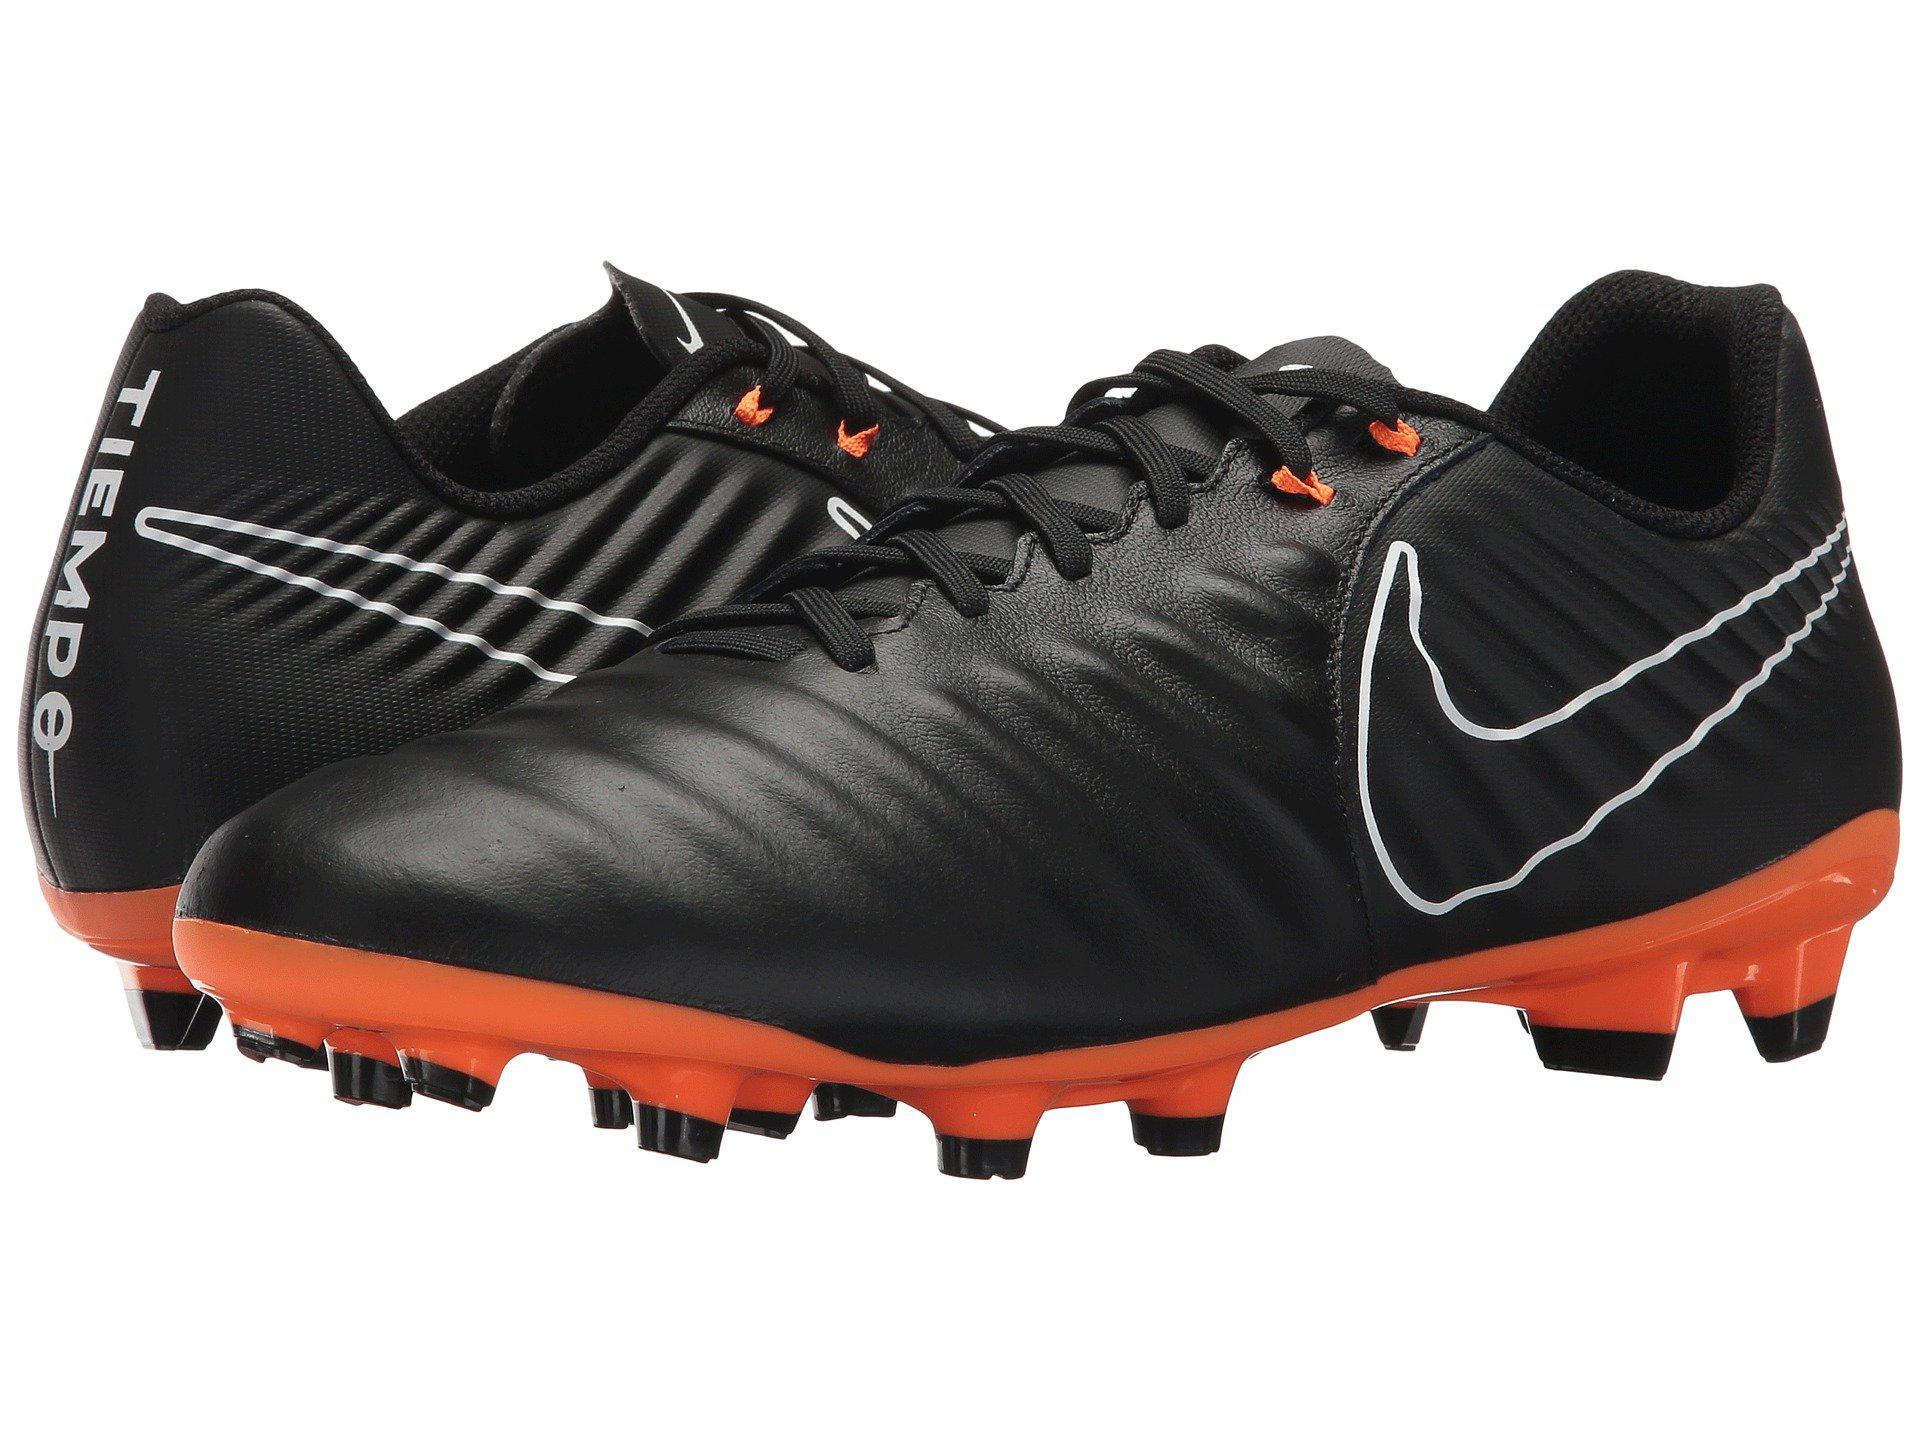 39f905eecd4 Lyst - Nike Tiempo Legend 7 Academy Fg in Black for Men